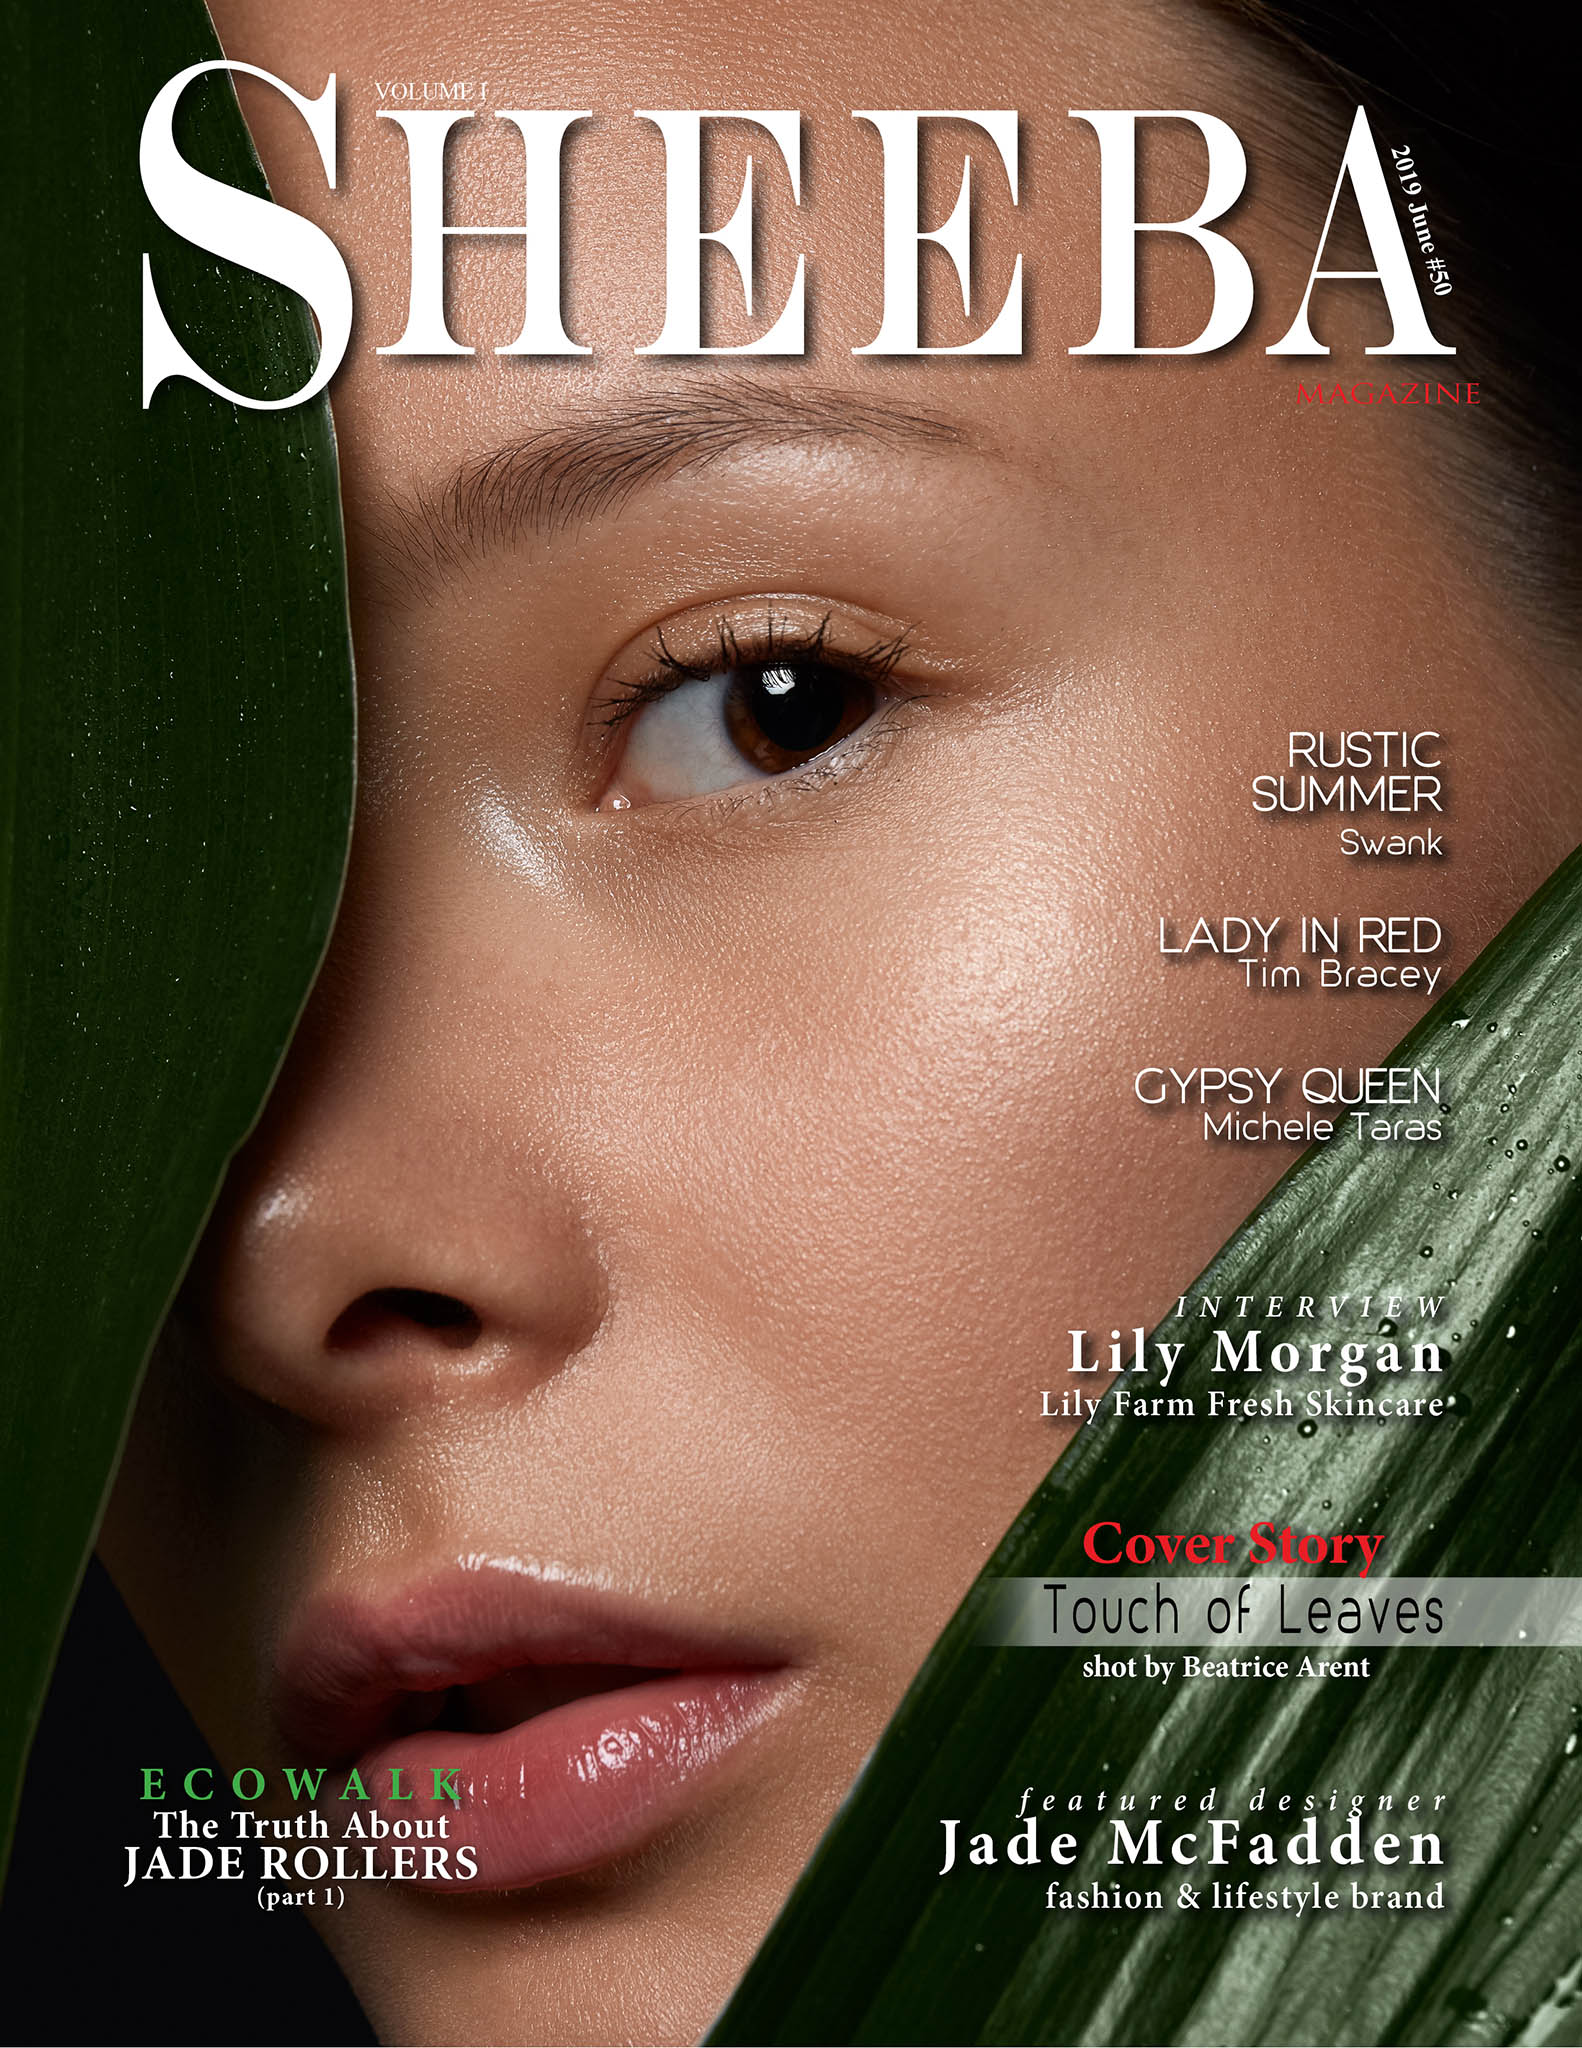 2019 #50 Sheeba June VOL I COVER web.jpg